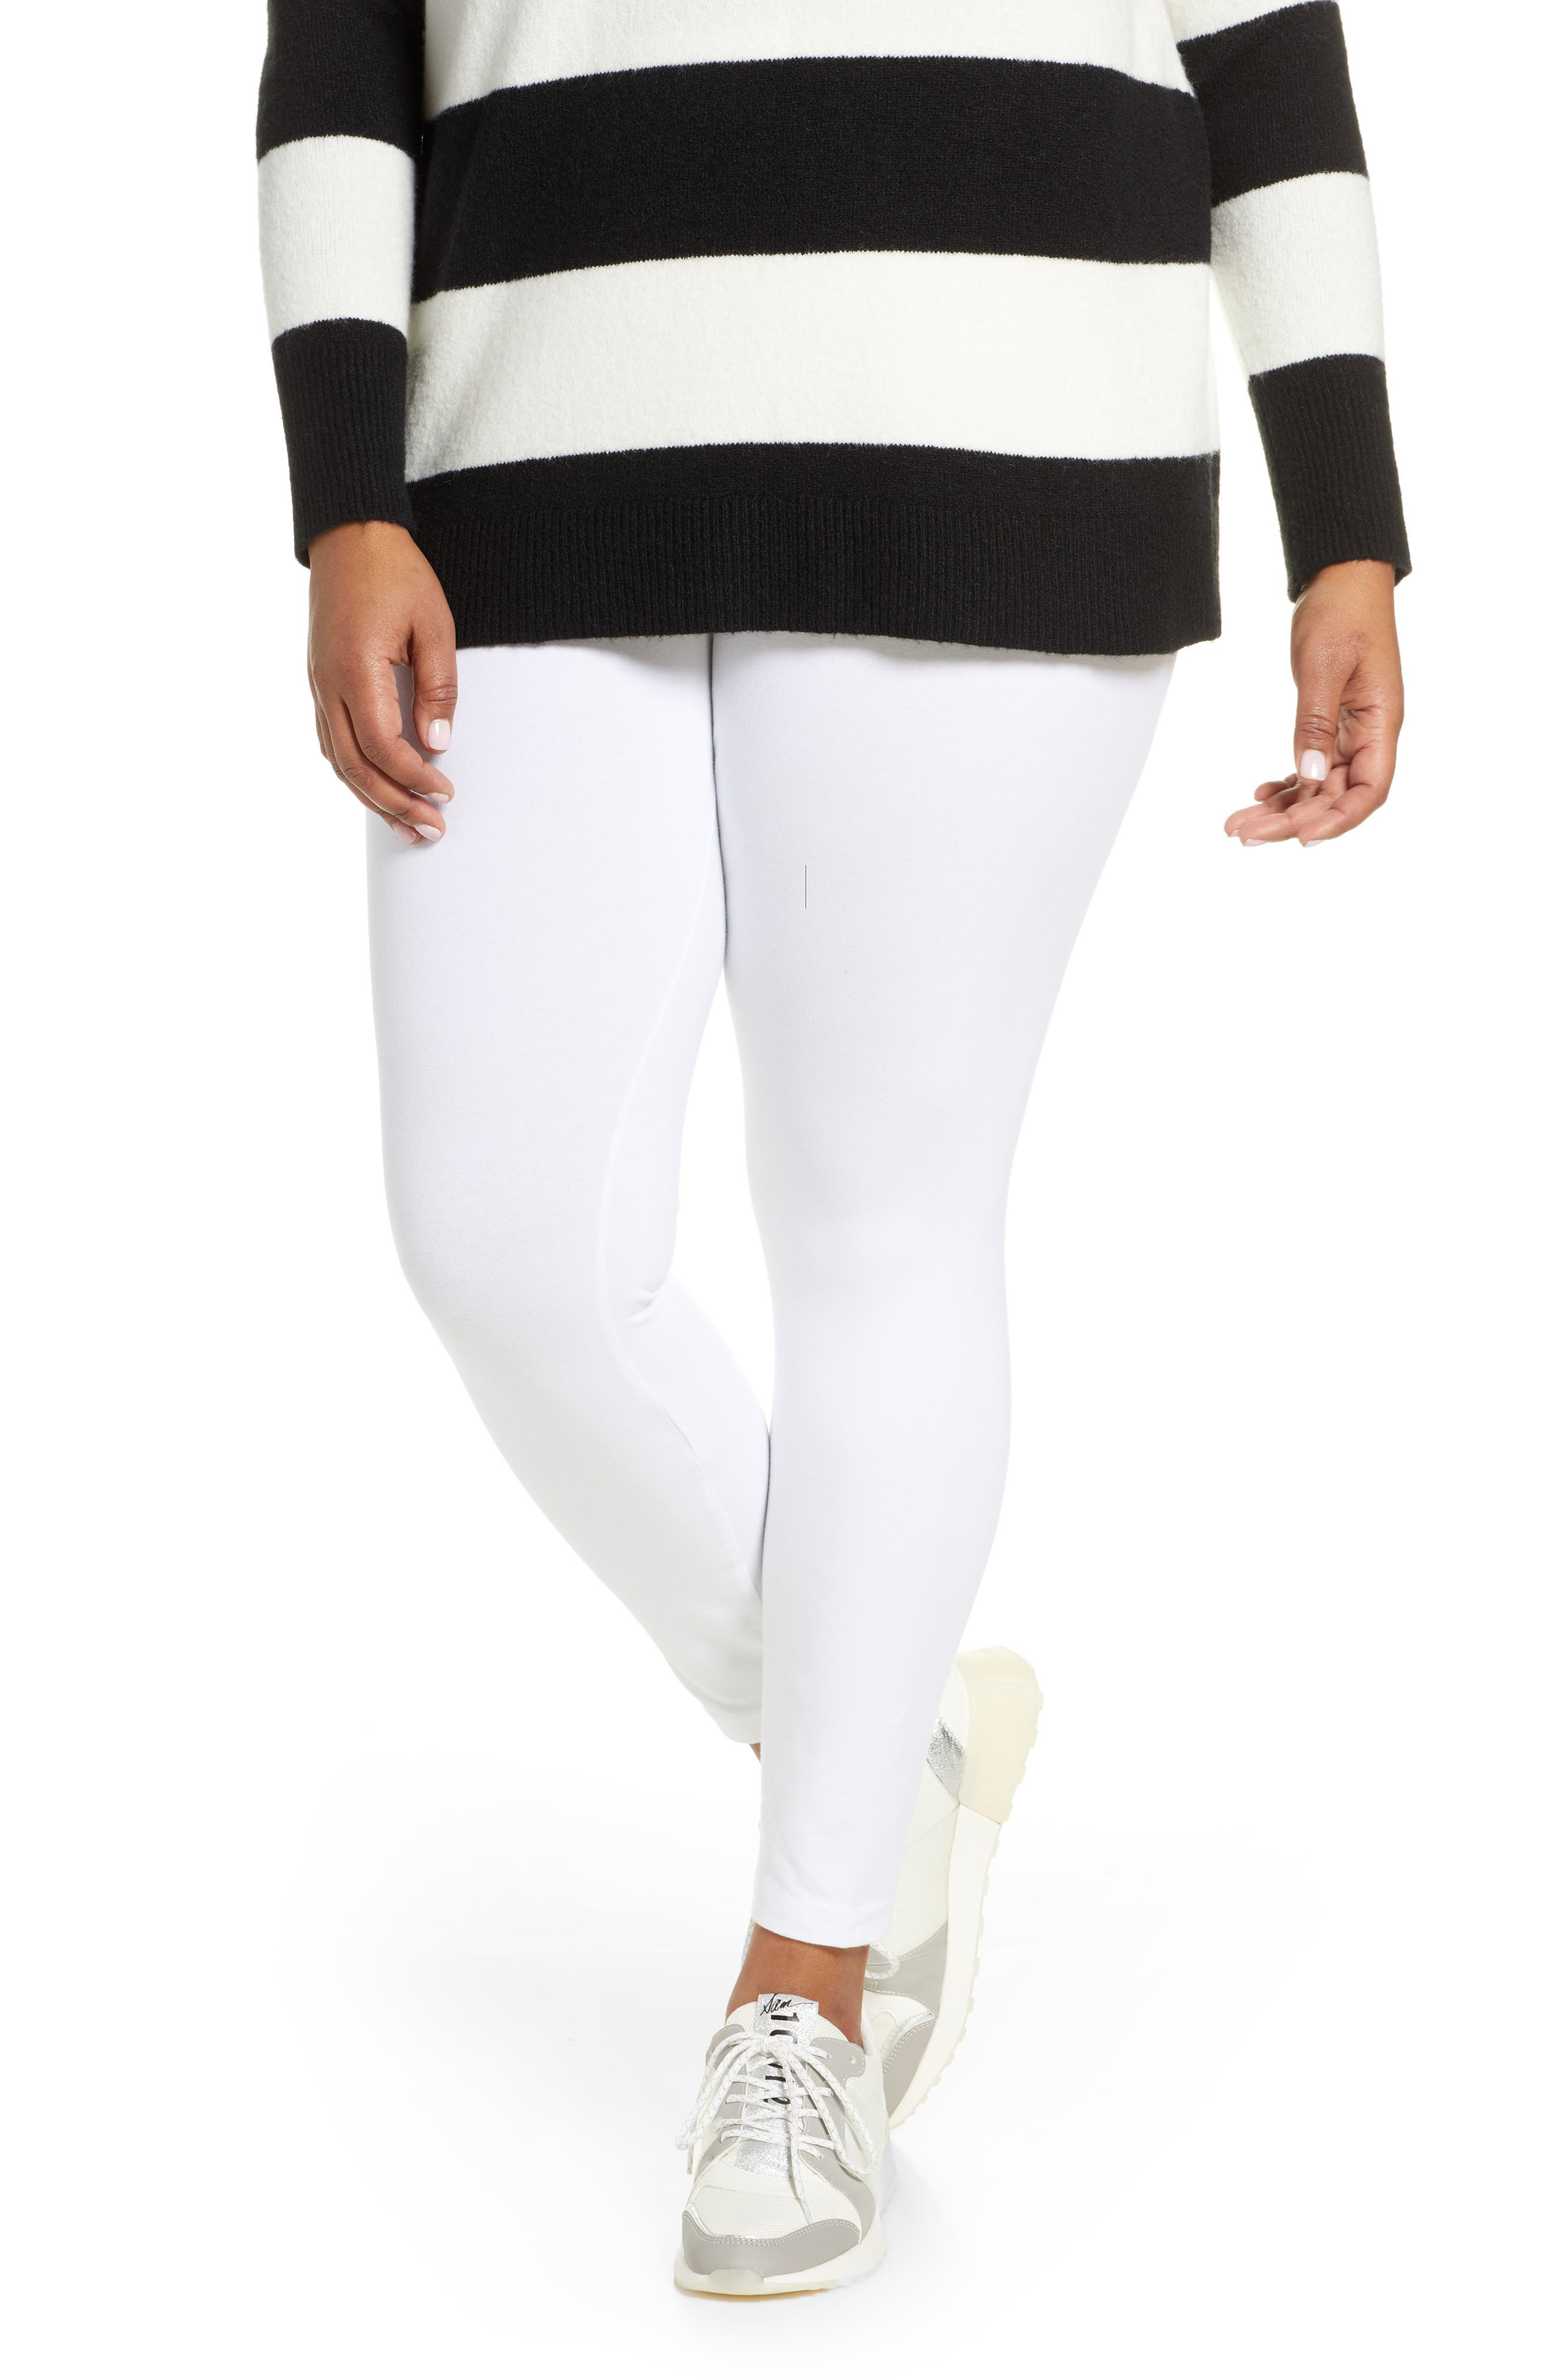 Plus Size Lysse Control Top Leggings, White